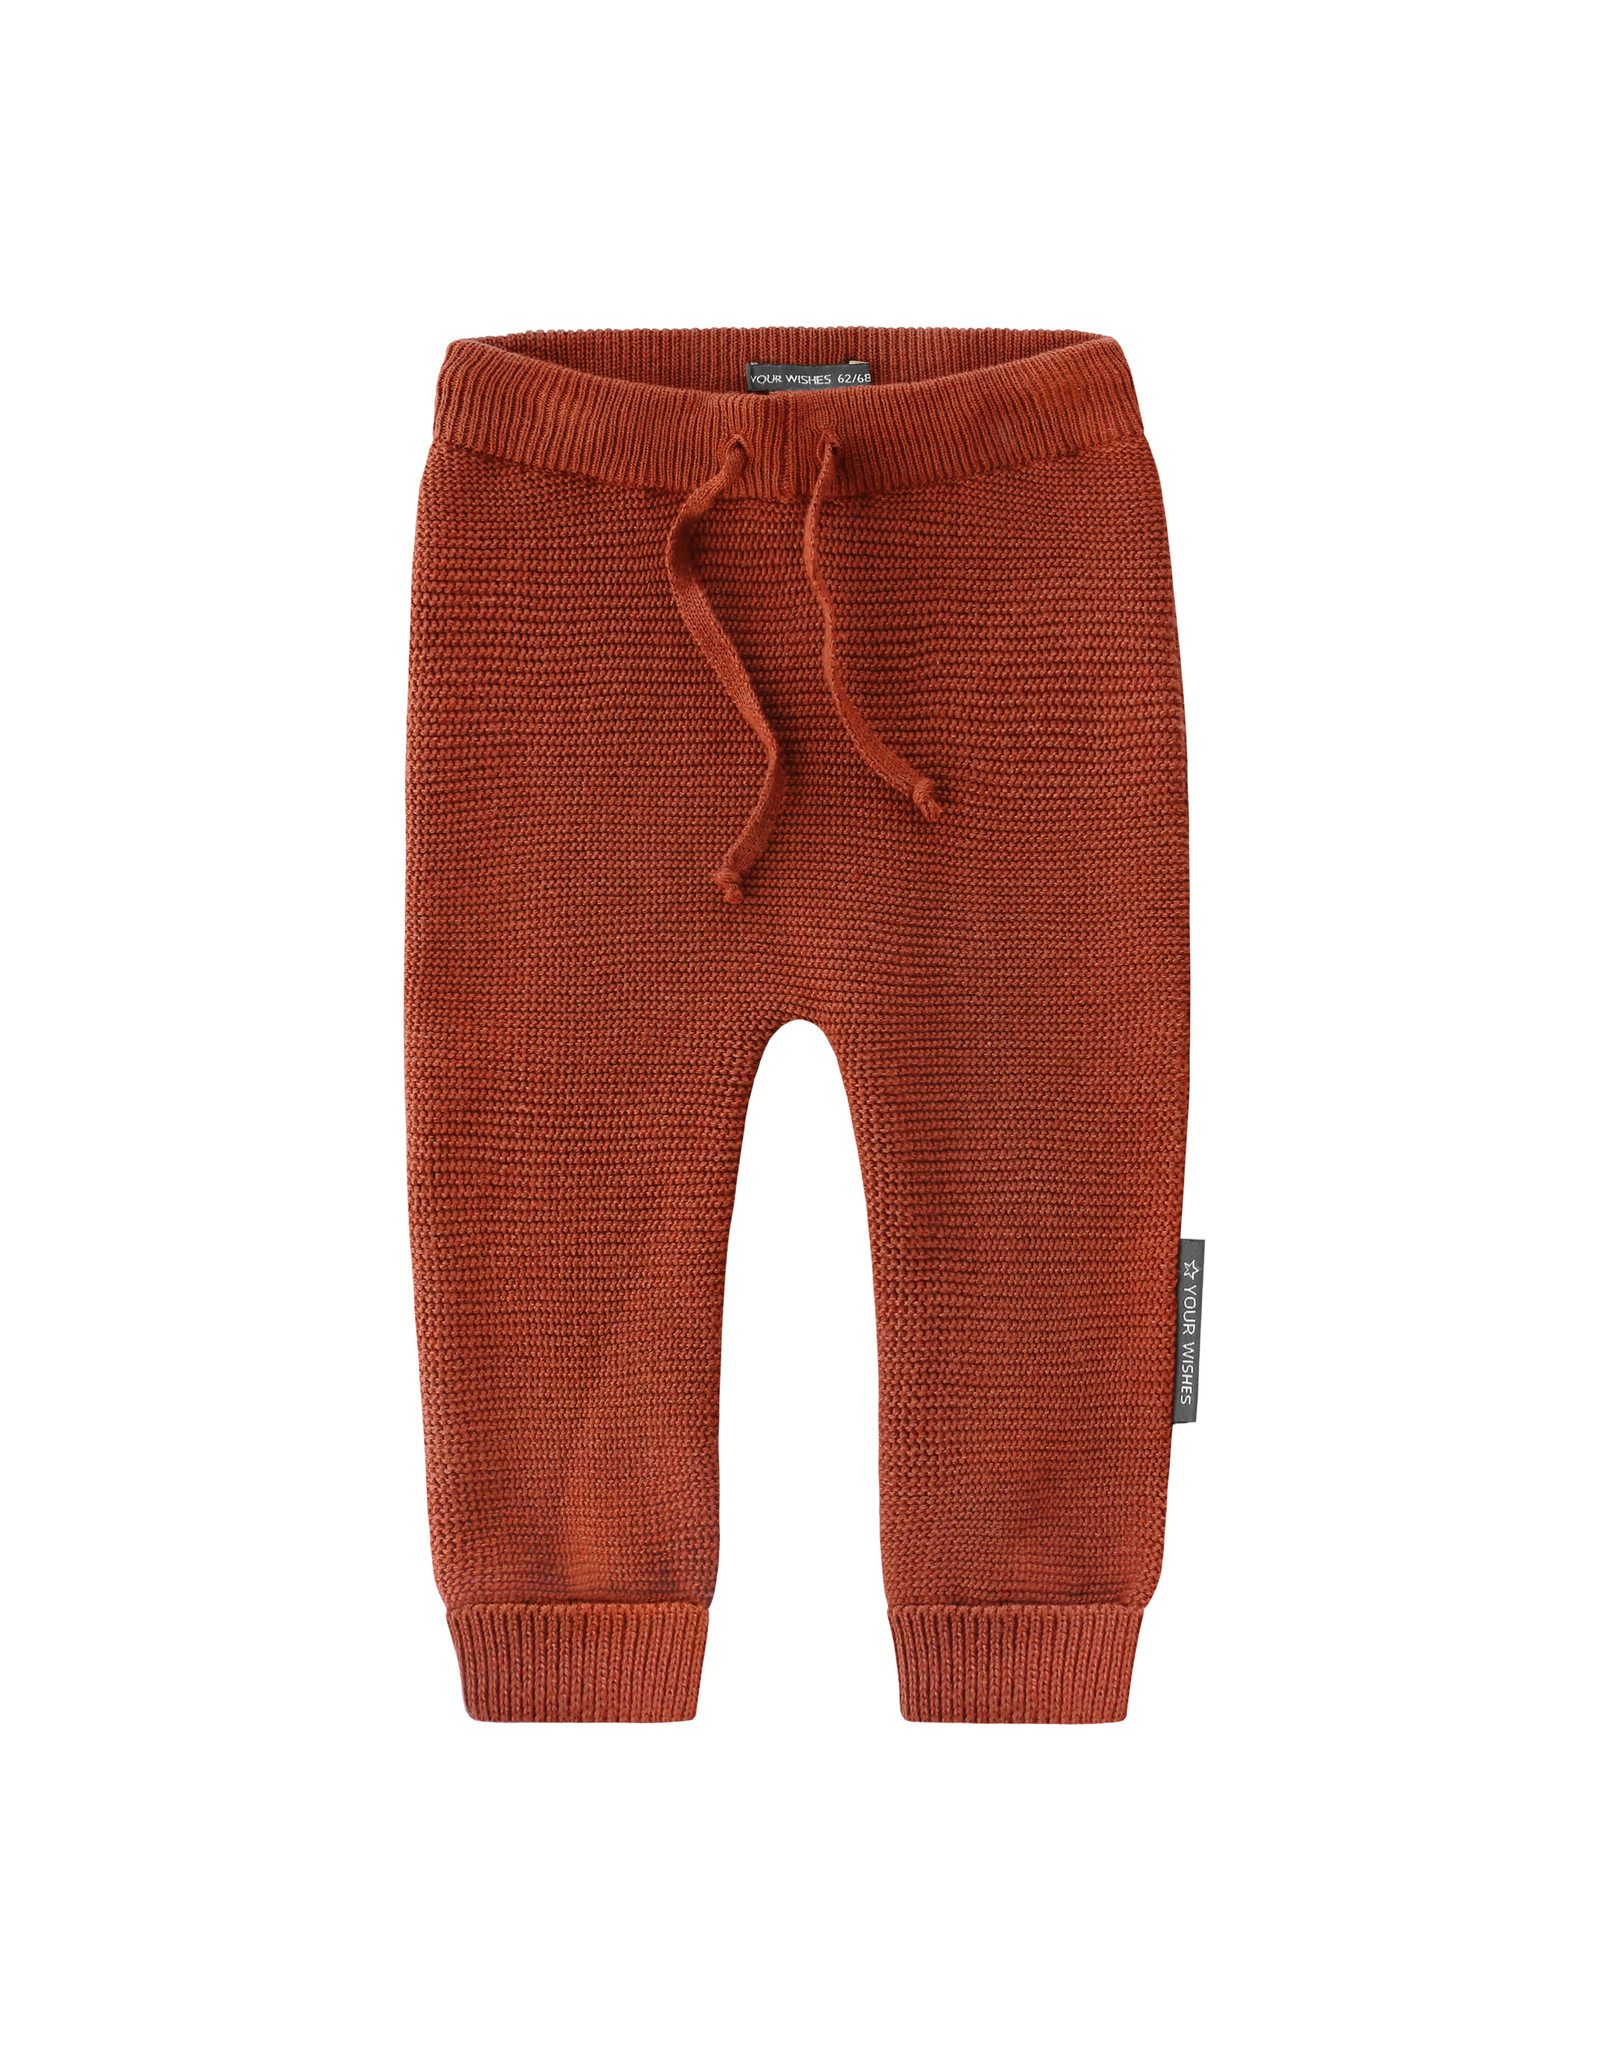 Your Wishes YW | Knit | Pants | Rust